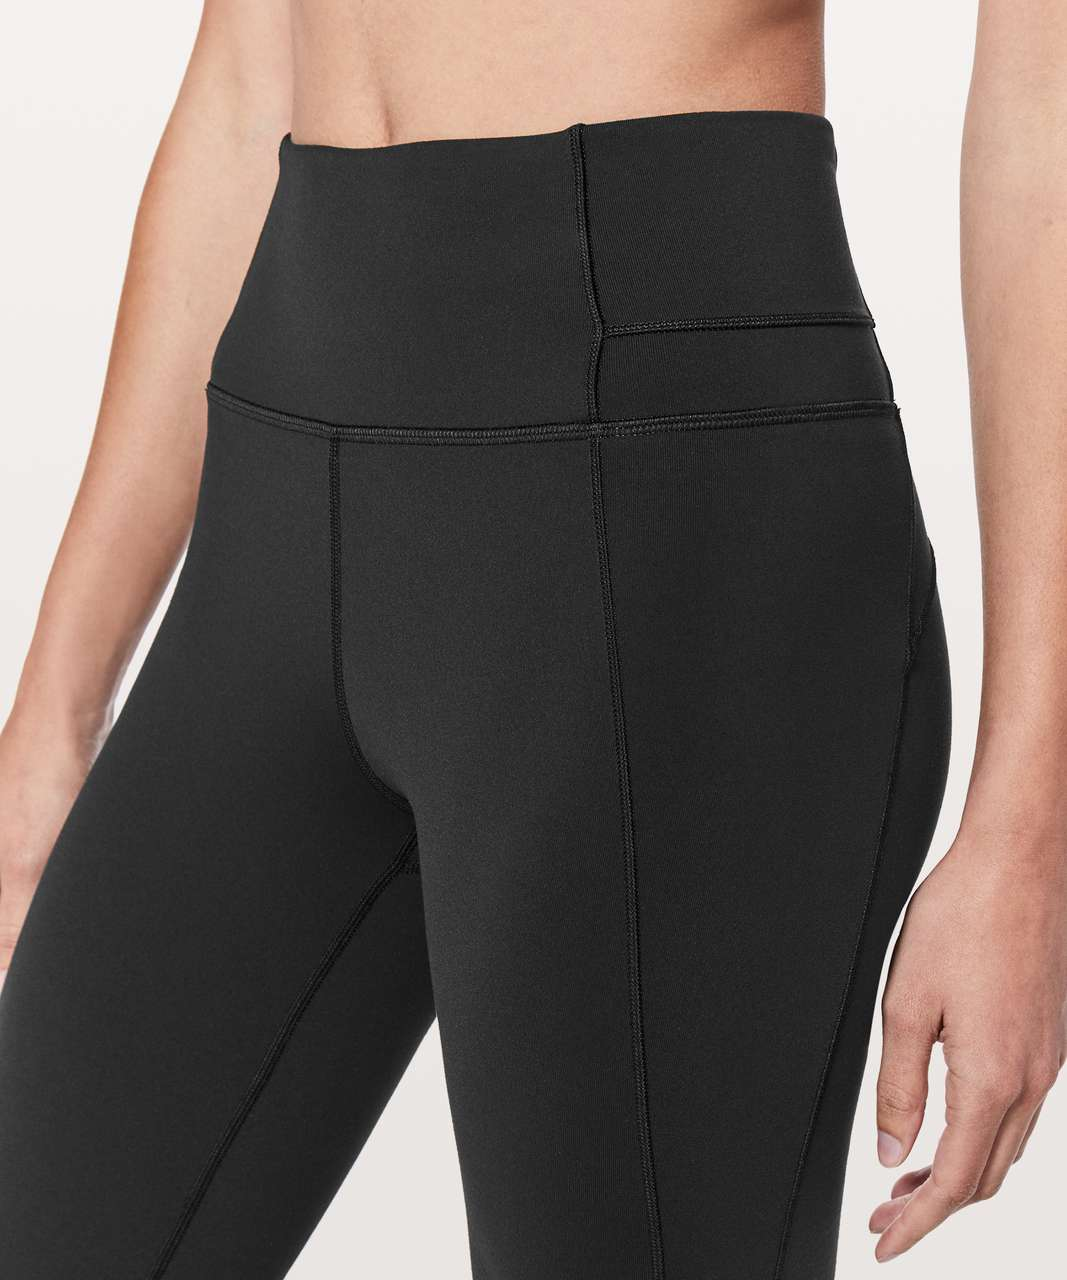 "Lululemon Groove Pant Flare *32"" - Black (First Release)"